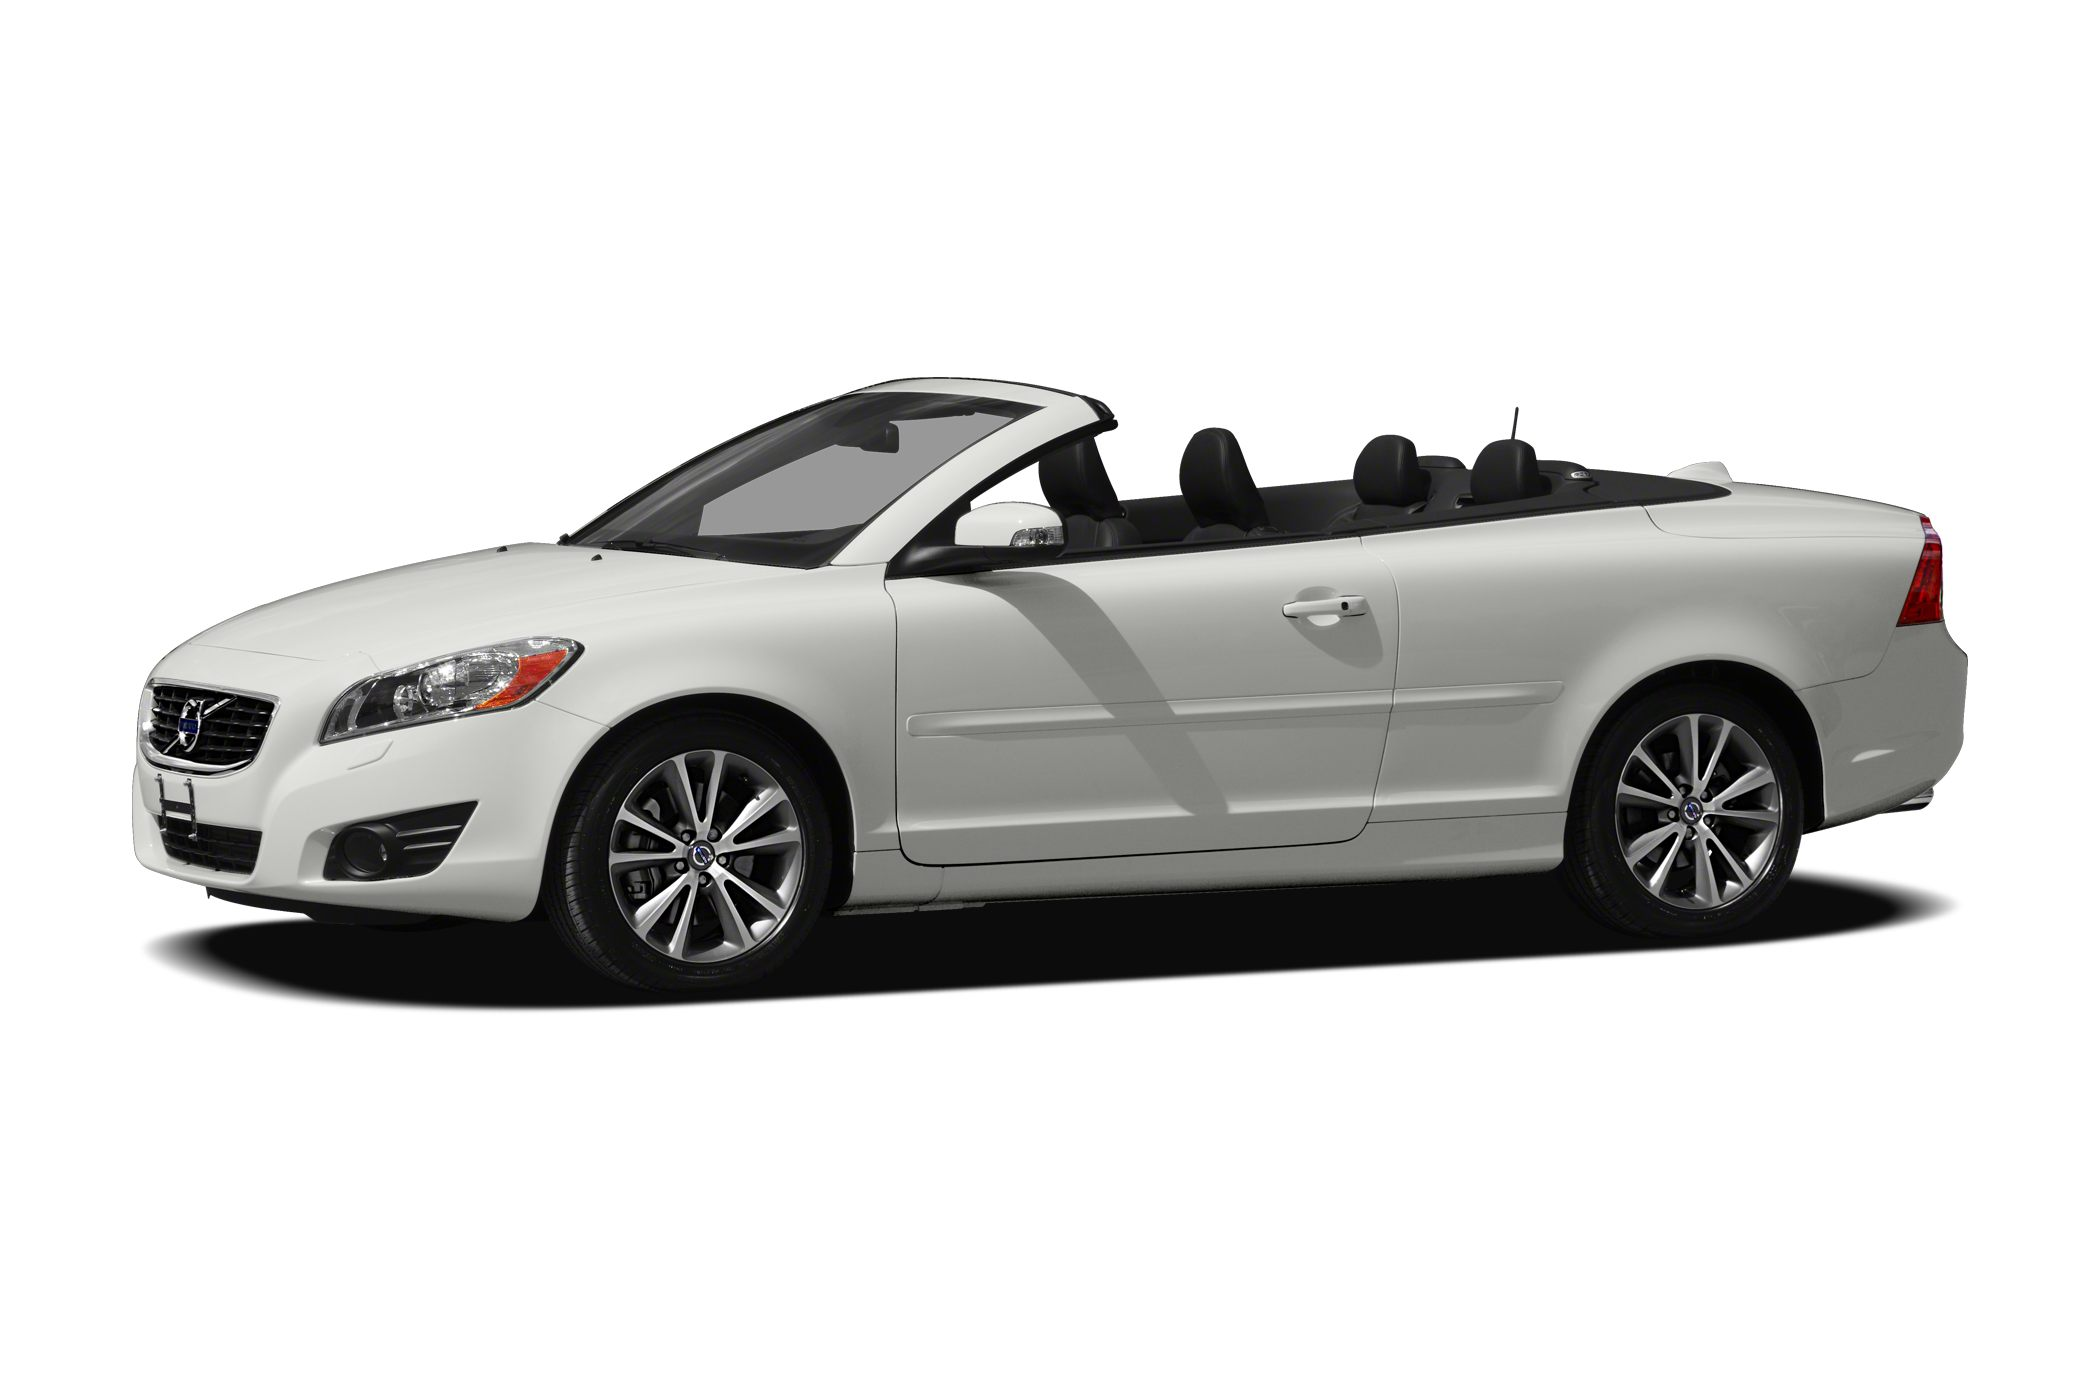 2011 Volvo C70 T5 Convertible for sale in Overland Park for $26,999 with 44,089 miles